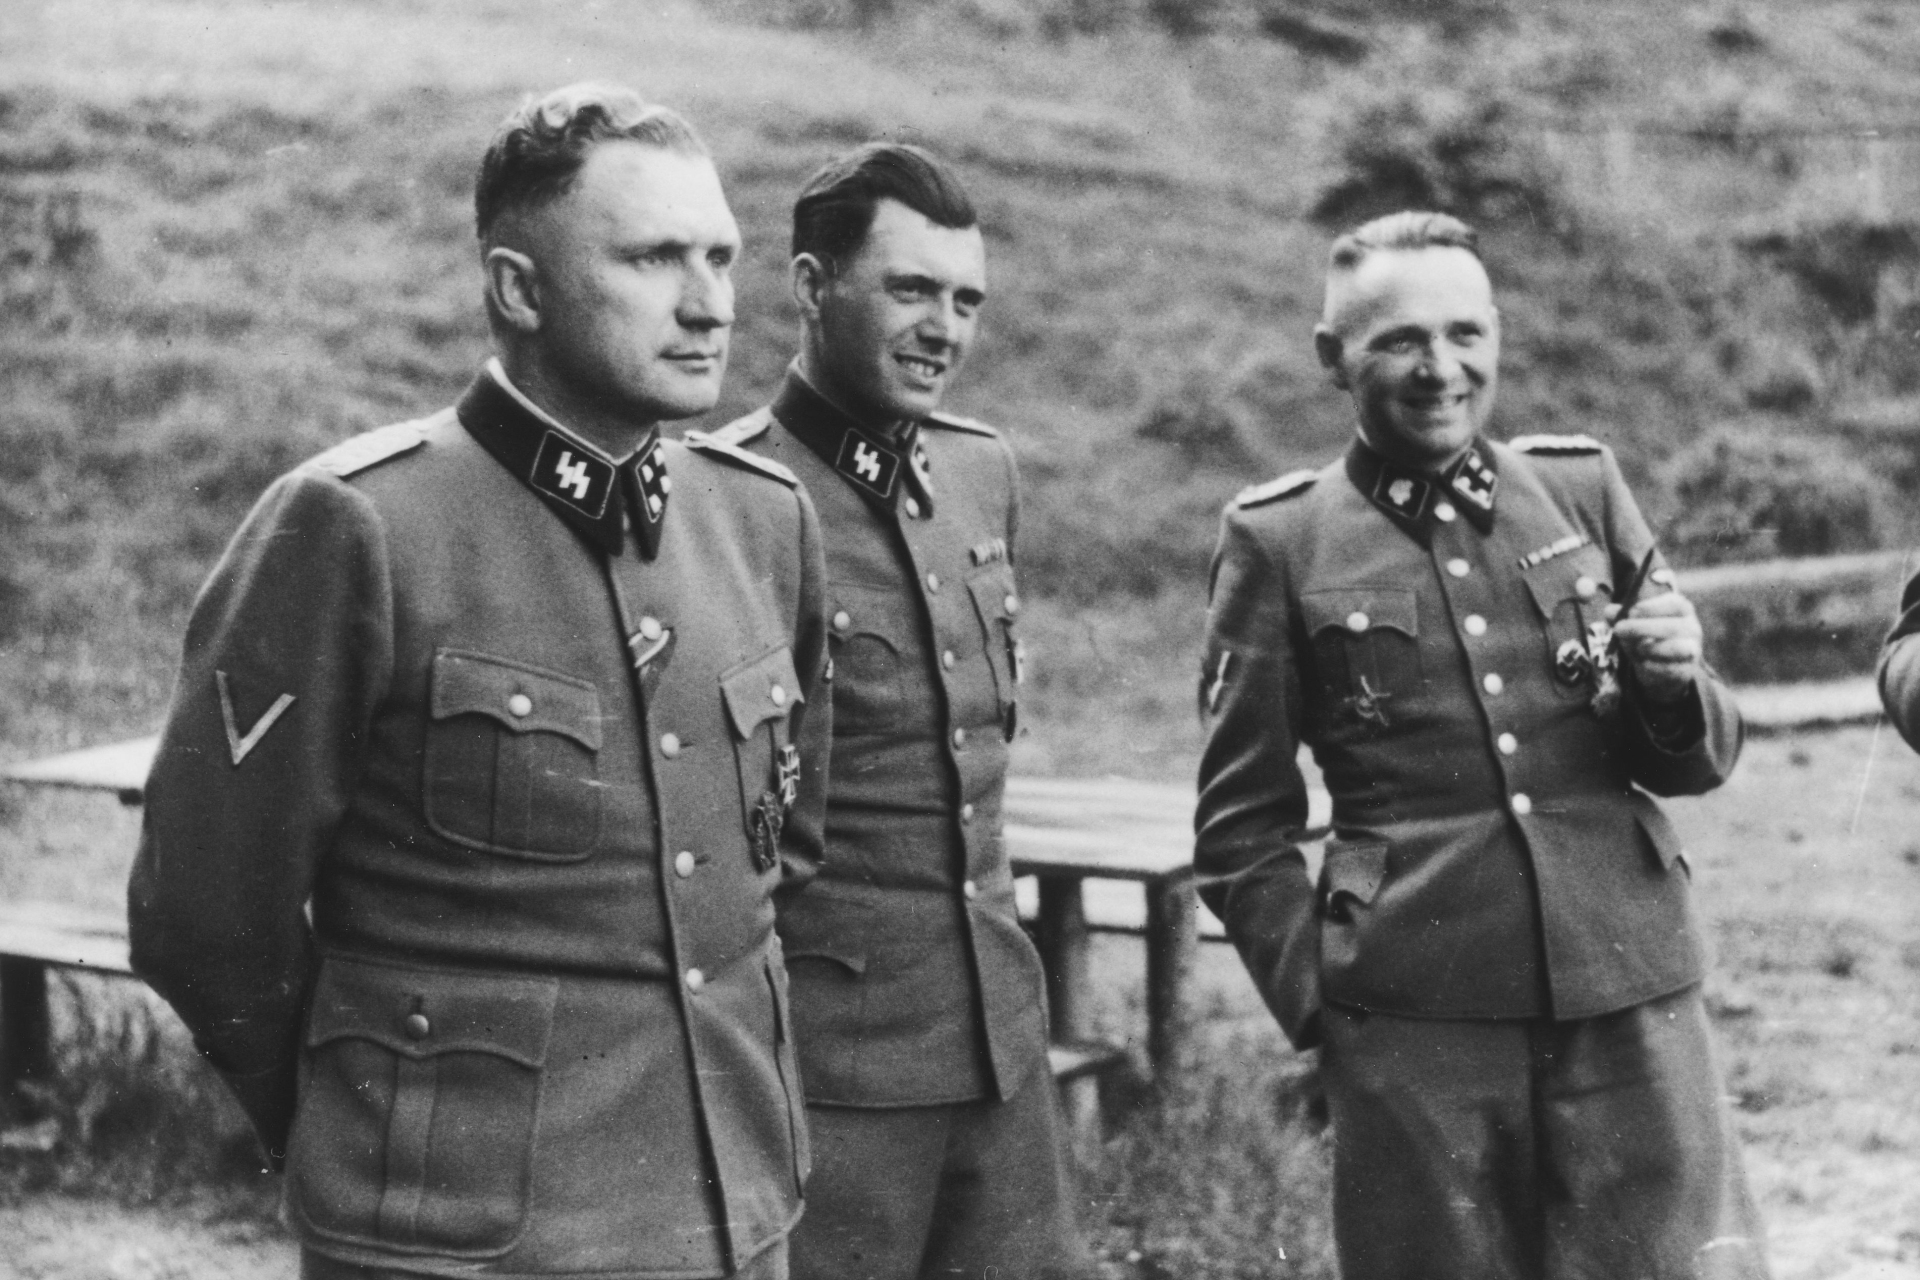 Josef Mengele: 25 Gruesome Facts About The Nazi Concentration Camp Doctor Known As 'The Angel Of Death'